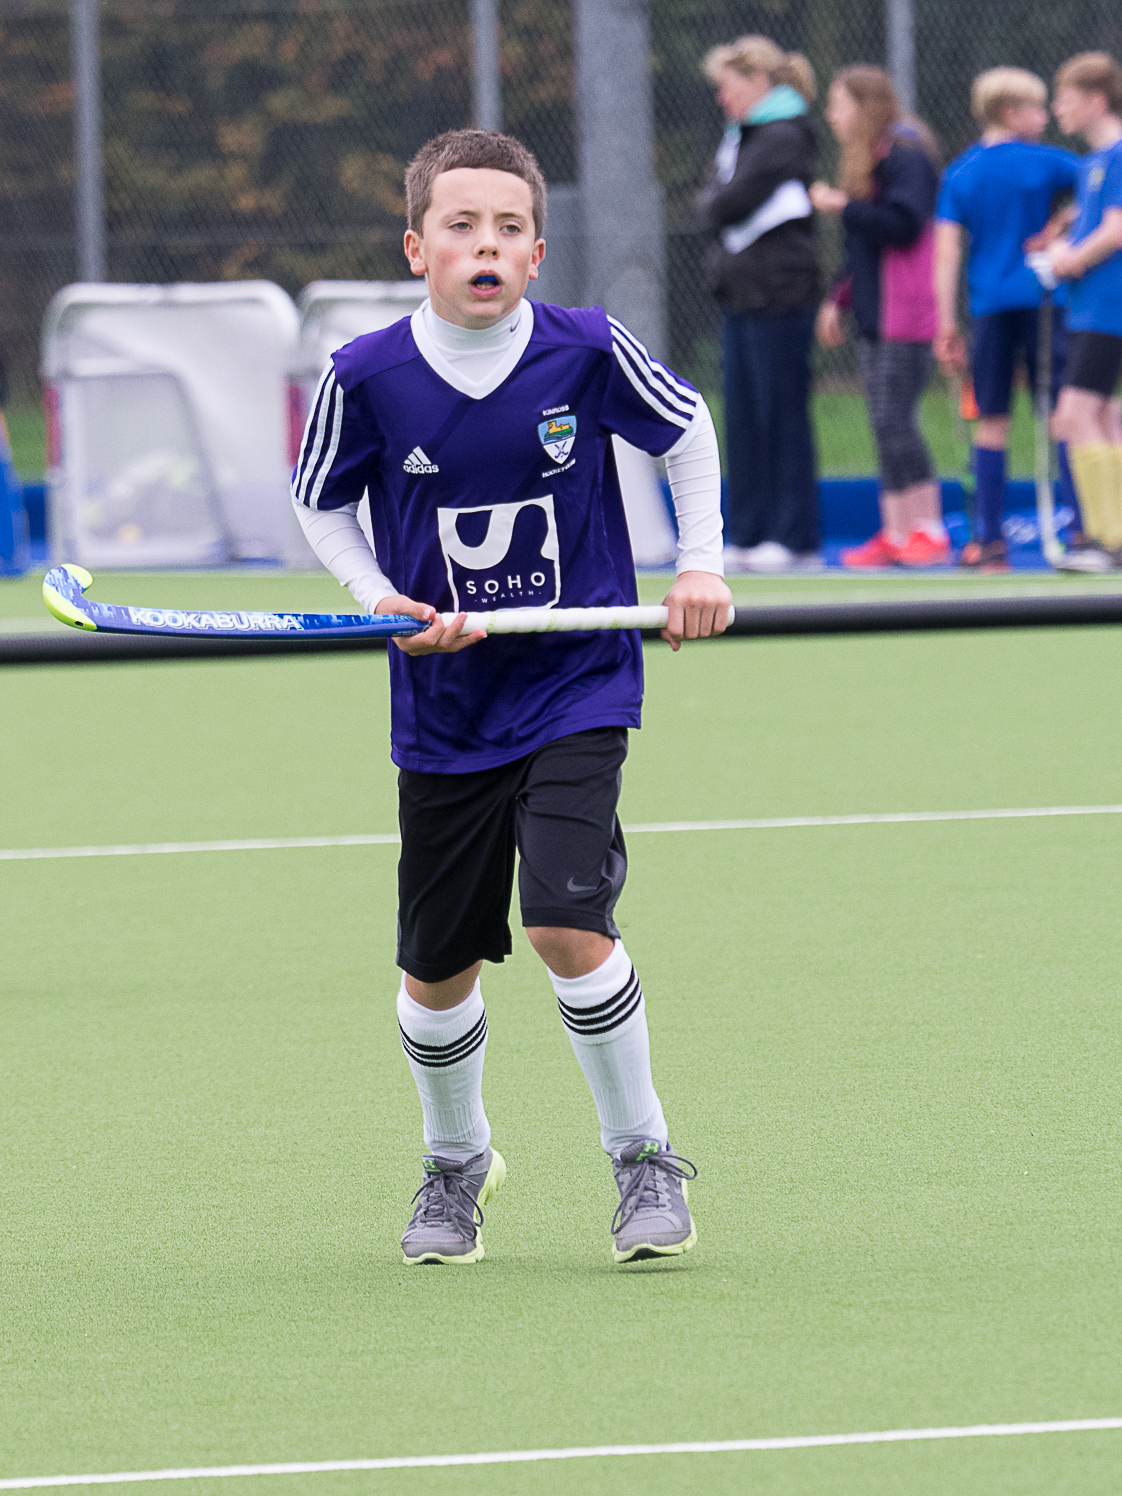 Hockey Kinross Sept 24th-26.jpg